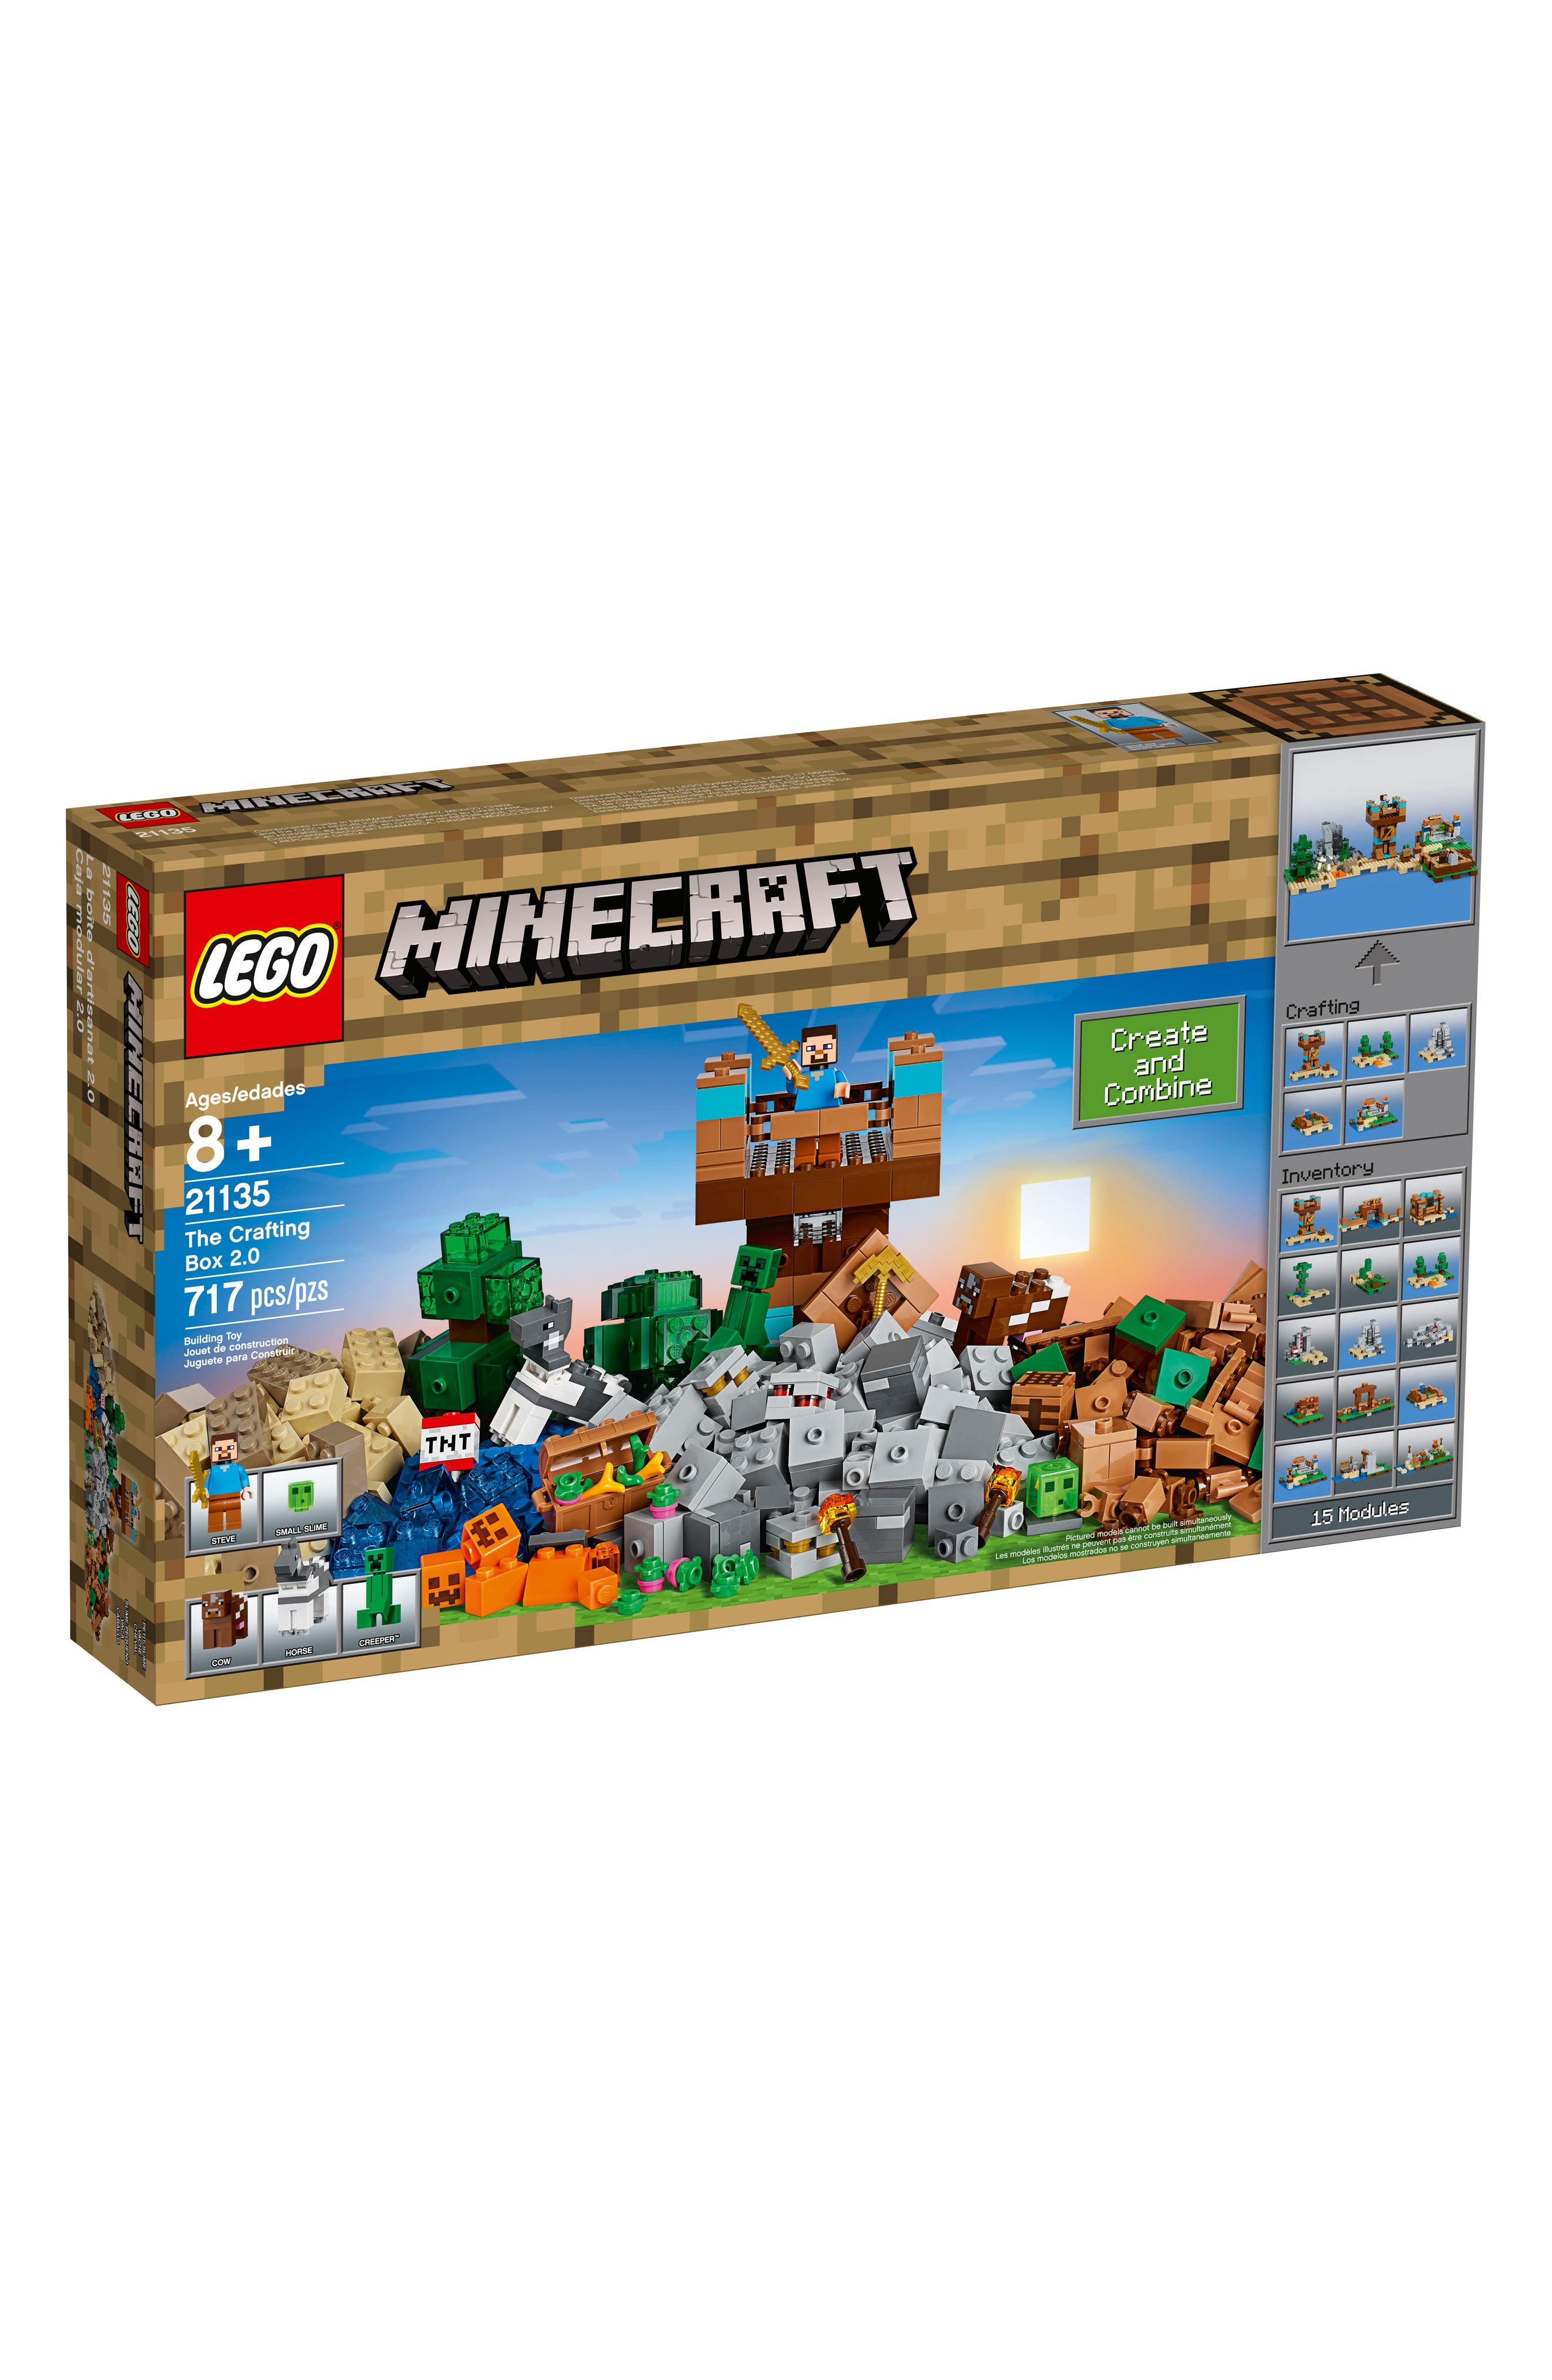 Minecraft<sup>™</sup> The Crafting Box 2.0 Play Set - 21135,                         Main,                         color, 020